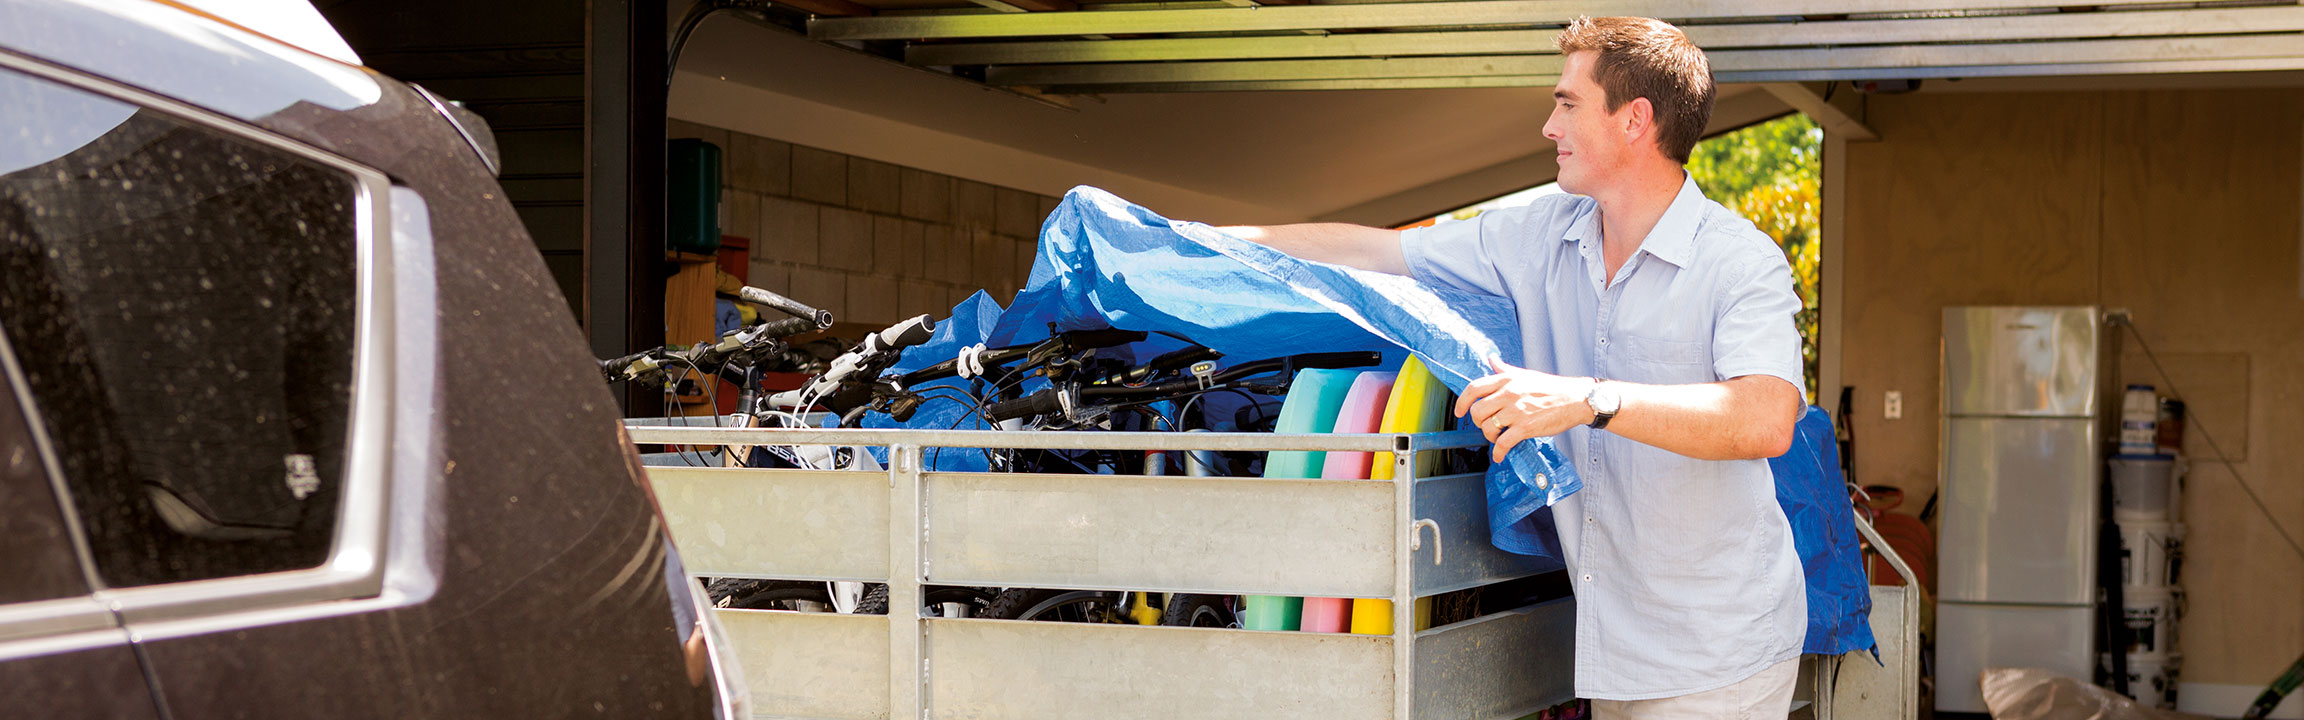 A man covering his trailer holding bikes and body boards